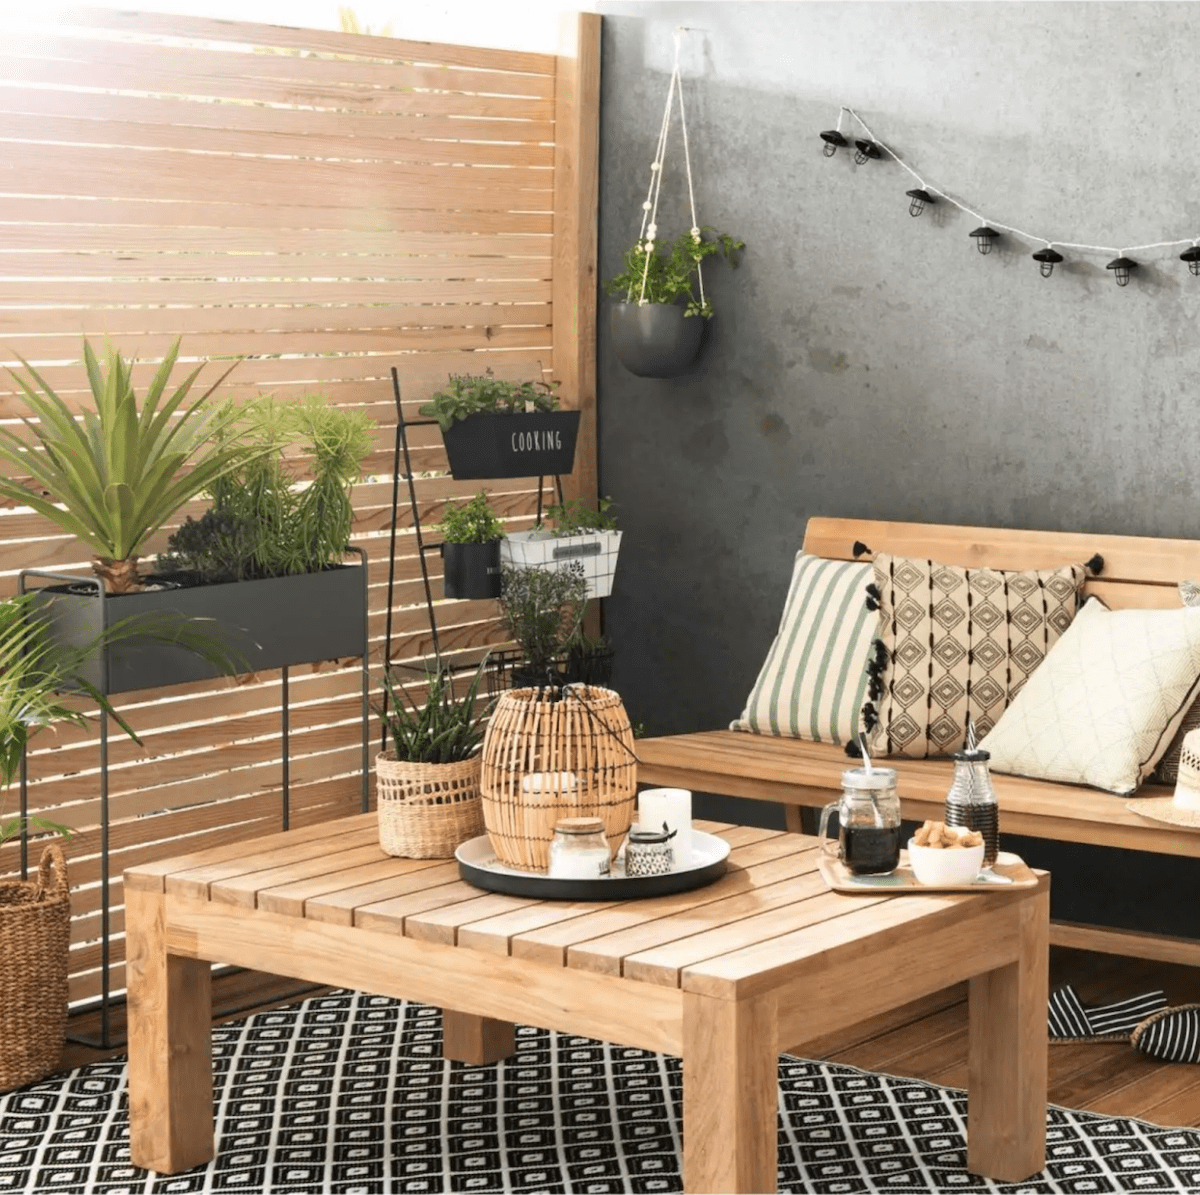 Ou Trouver Un Tapis Exterieur Pas Cher Cher Exterieur Ou Pas Tapis Trouver Un In 2020 With Images Outdoor Furniture Sets Terrace Furniture